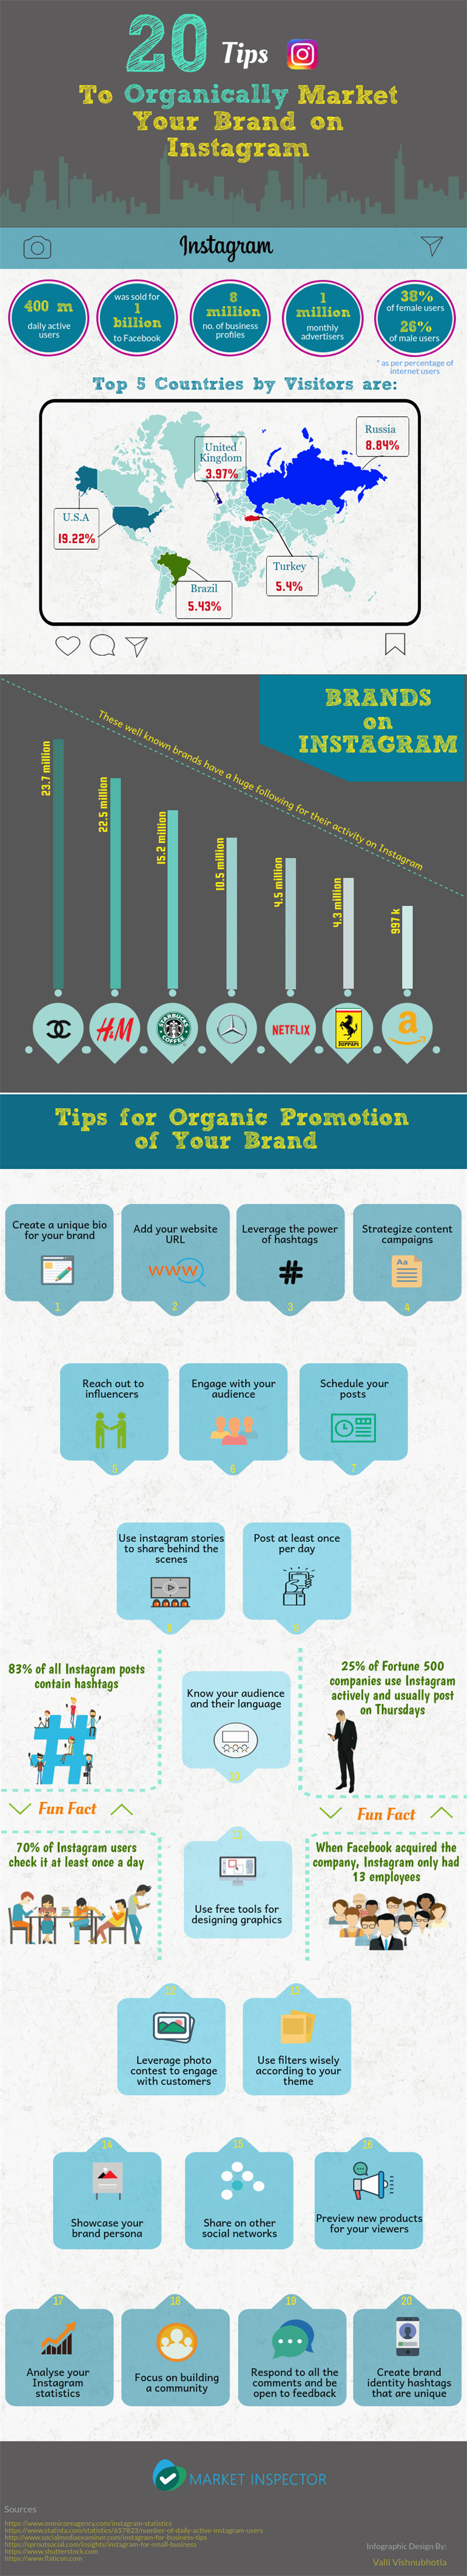 Tips To Organically Market Your Brand On Instagram